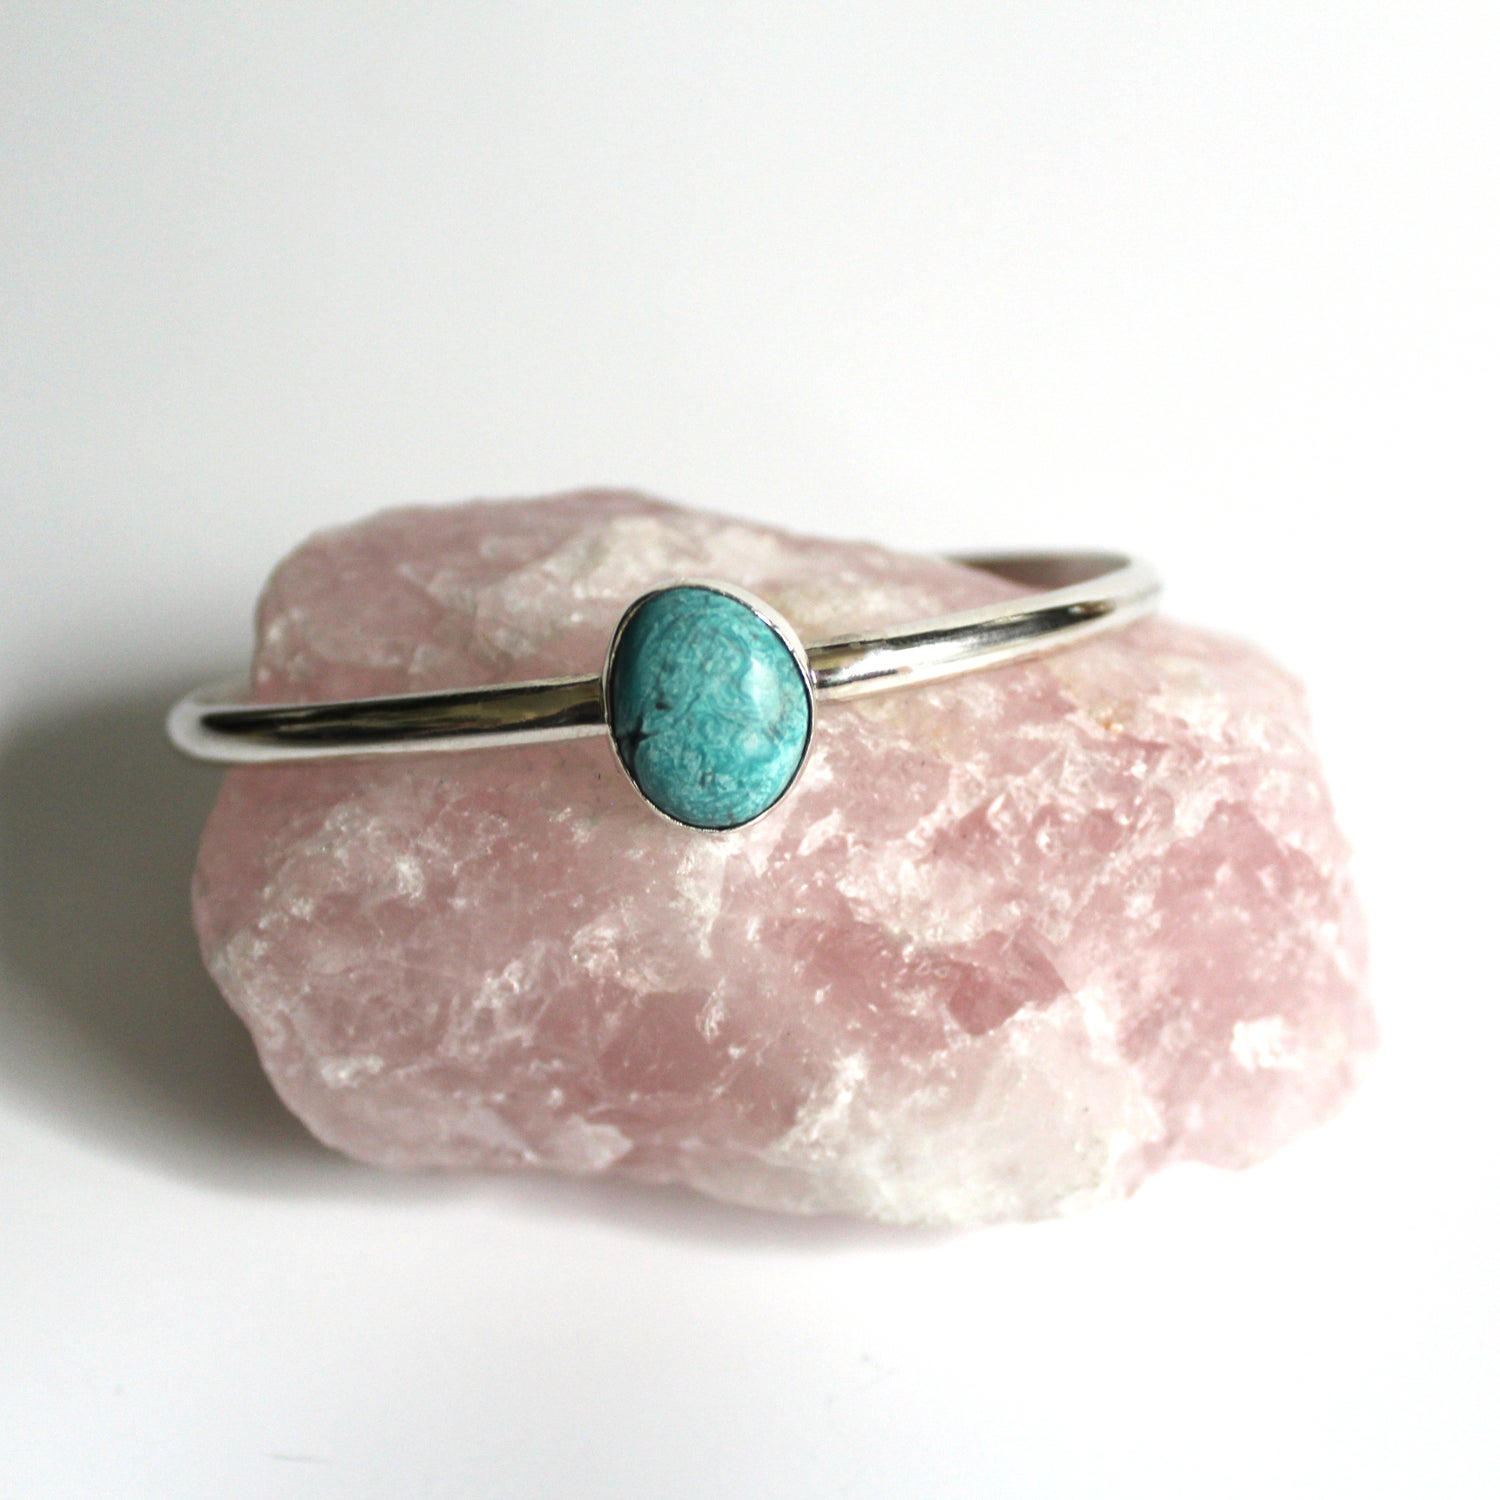 Image of Turquoise Sterling Silver Cuff